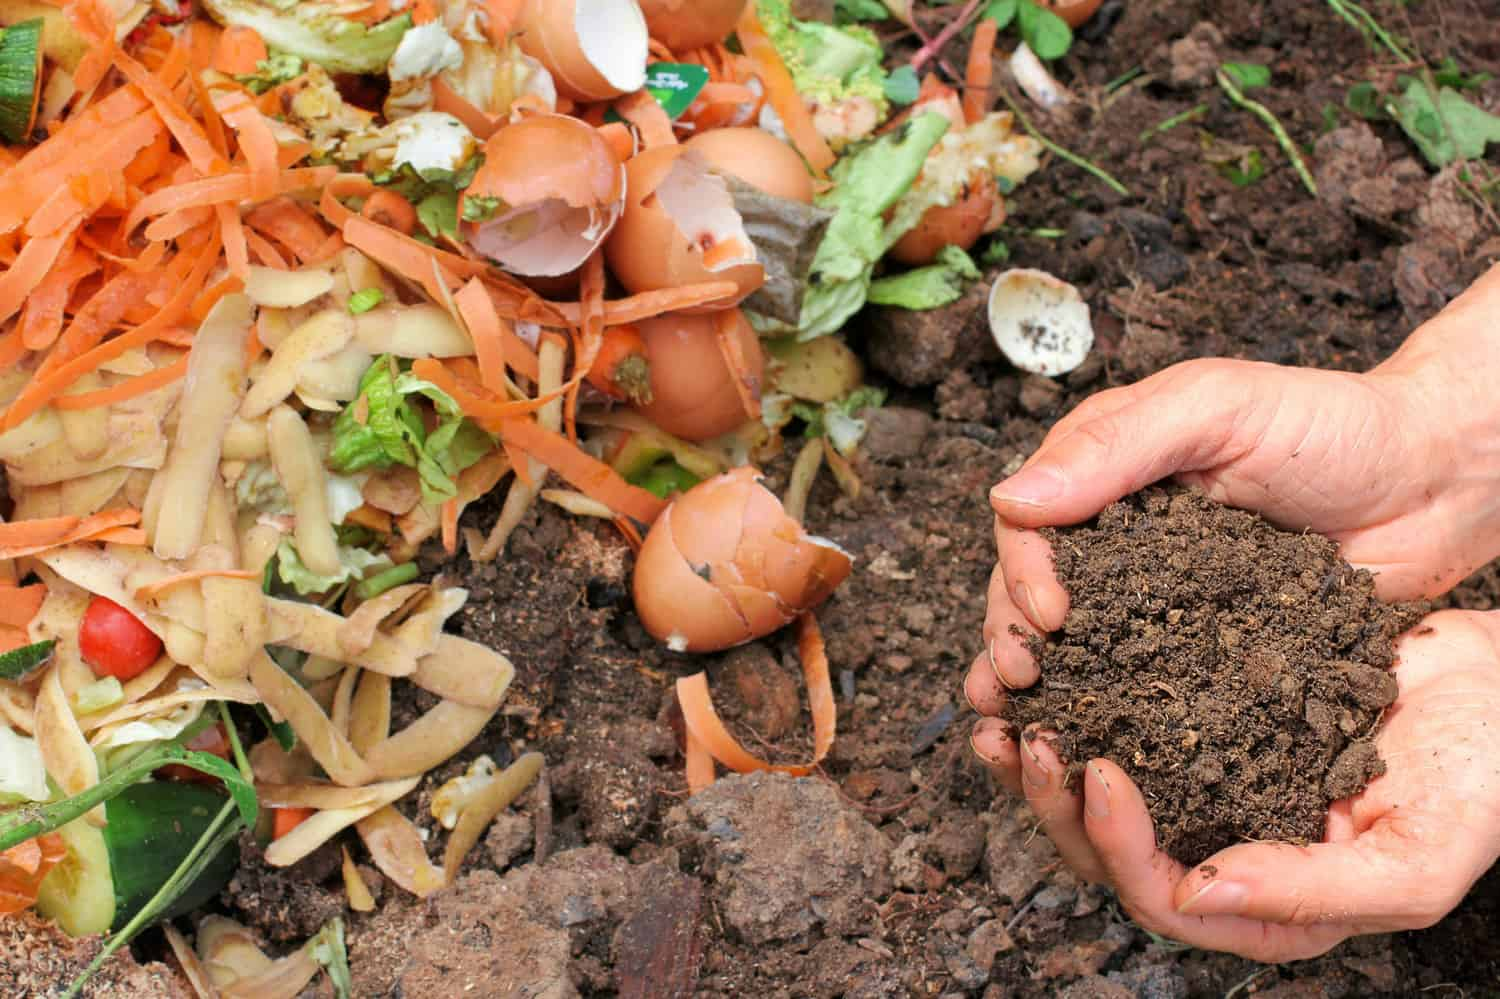 Starting a compost pile requires a few simple steps: creating the compost heap, adding organic materials, and watering and turning the compost as necessary. Photo: Gardening Know How